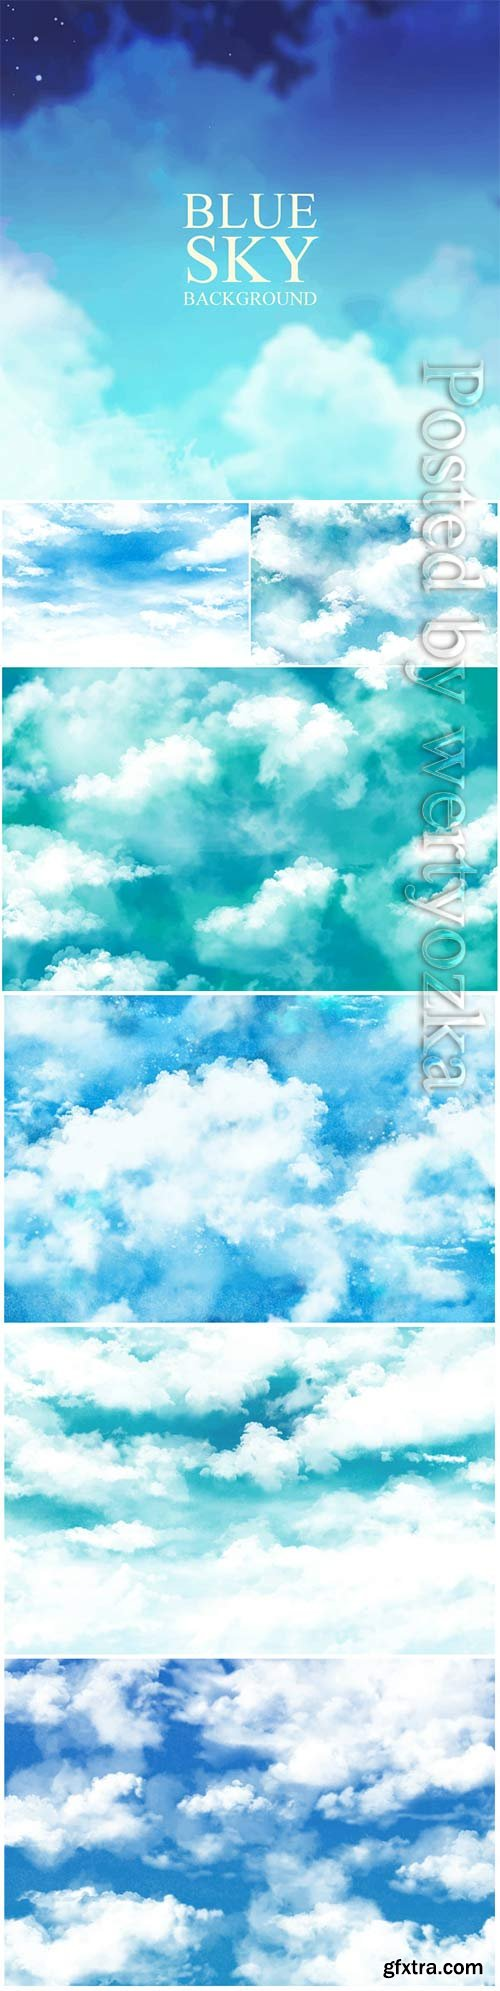 Sky paint texture vector background